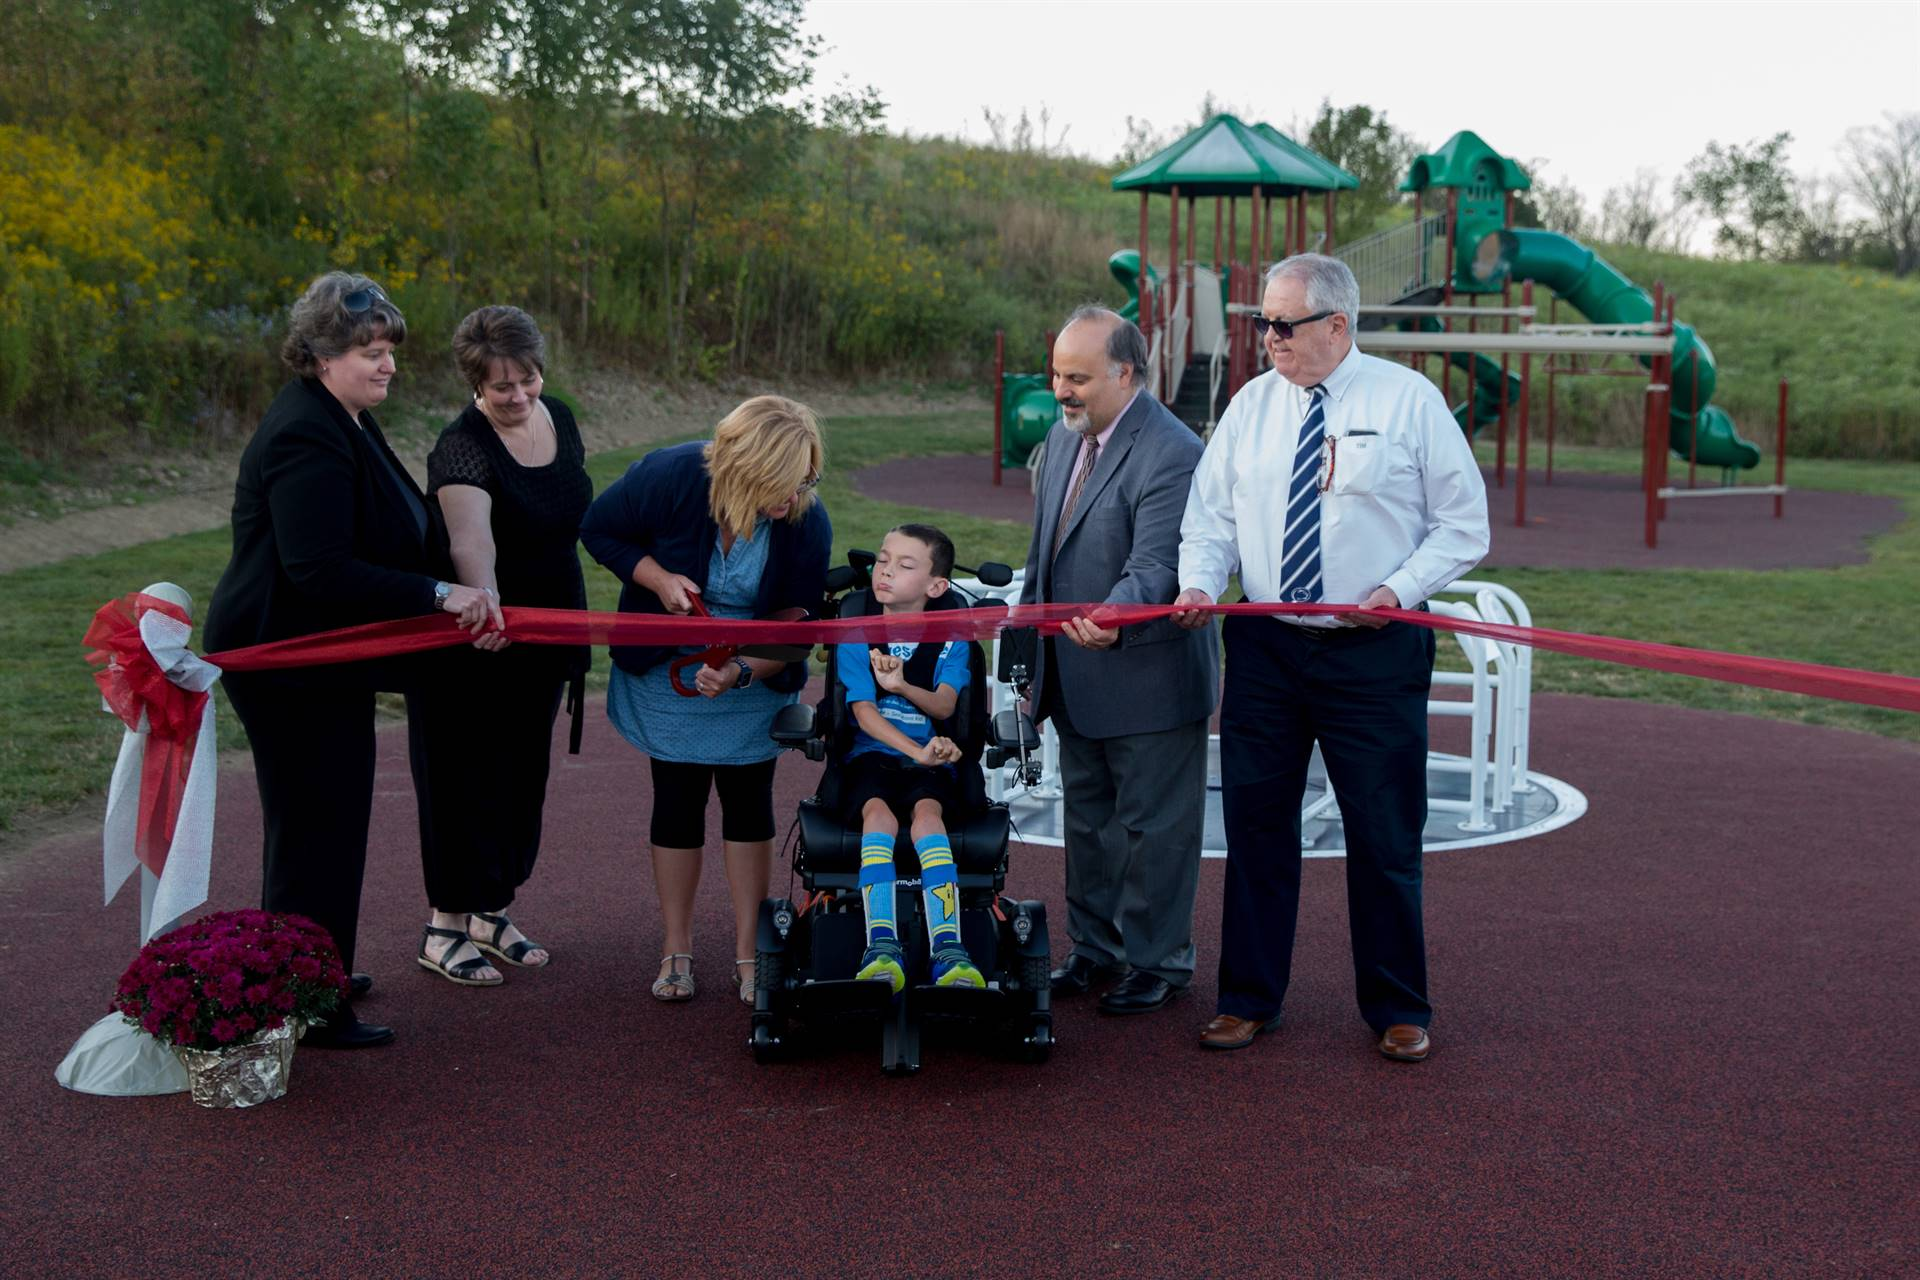 Ribbon cutting ceremony for the new playground equipment at Dutch Ridge